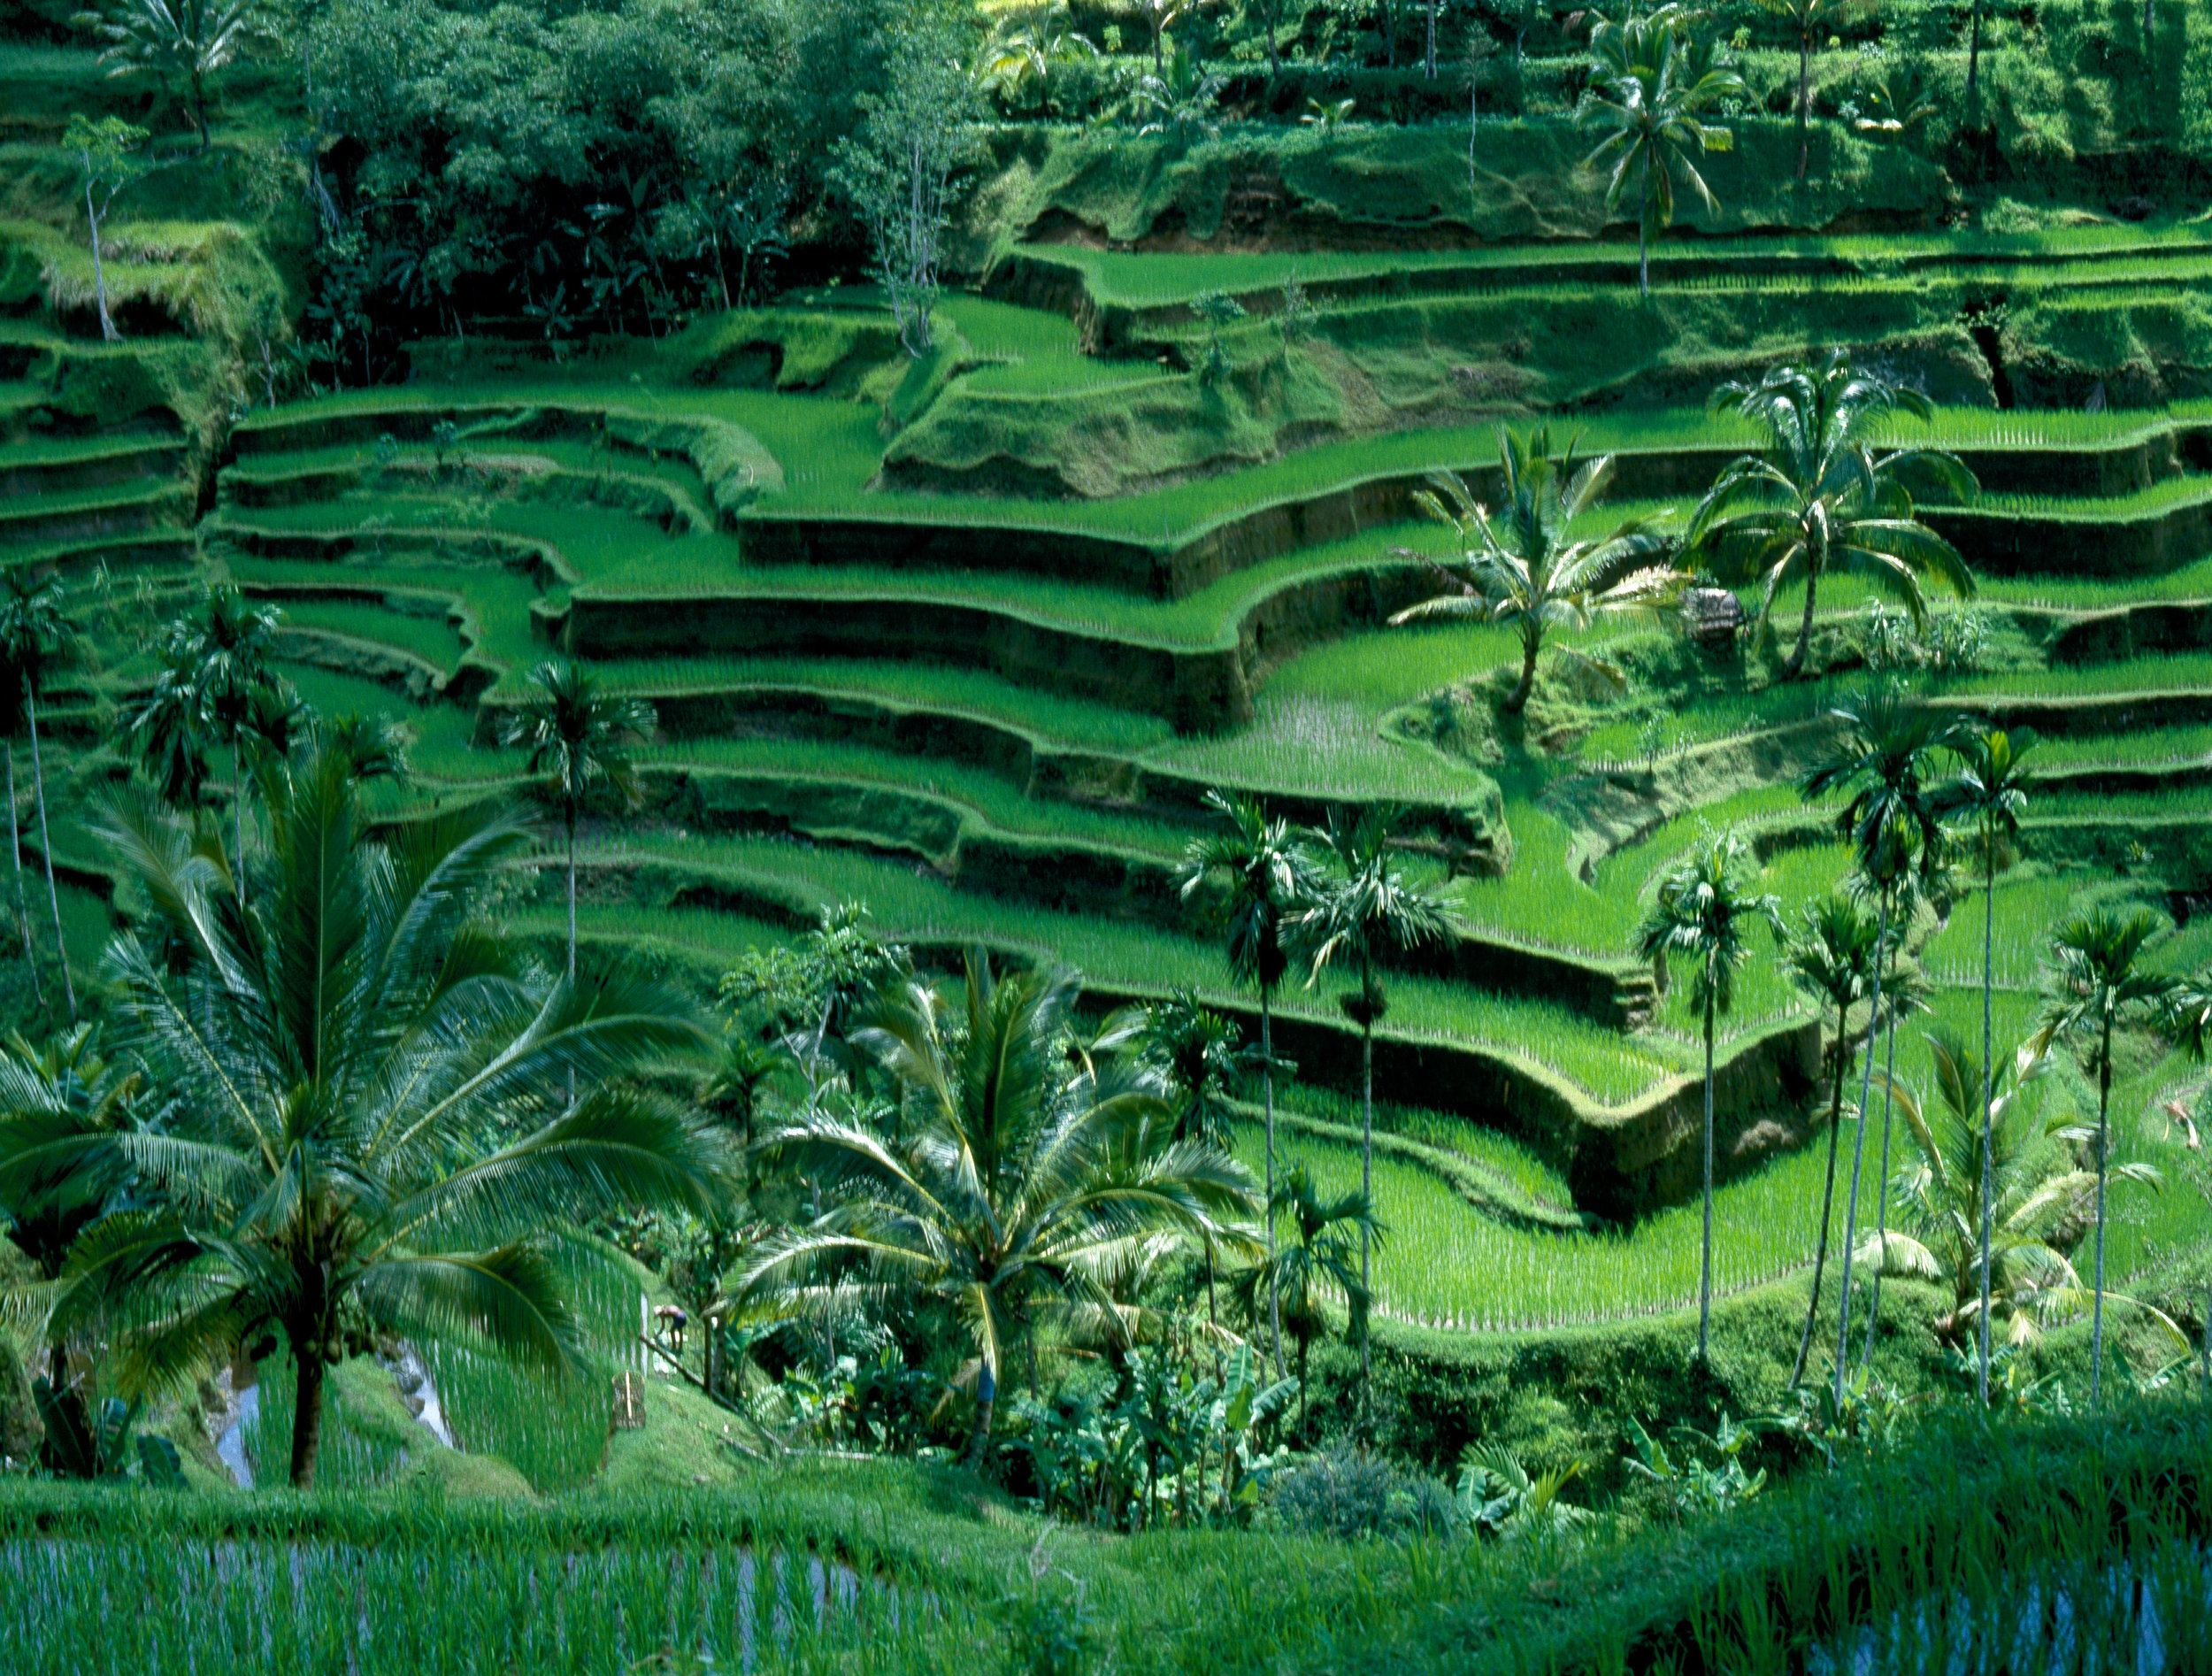 Bali. Terraced rice fields. Country of Origin: Indonesia. Culture: Balinese. Date/Period: 1982 Place of Origin: Bali. Credit Line: Werner Forman Archive.